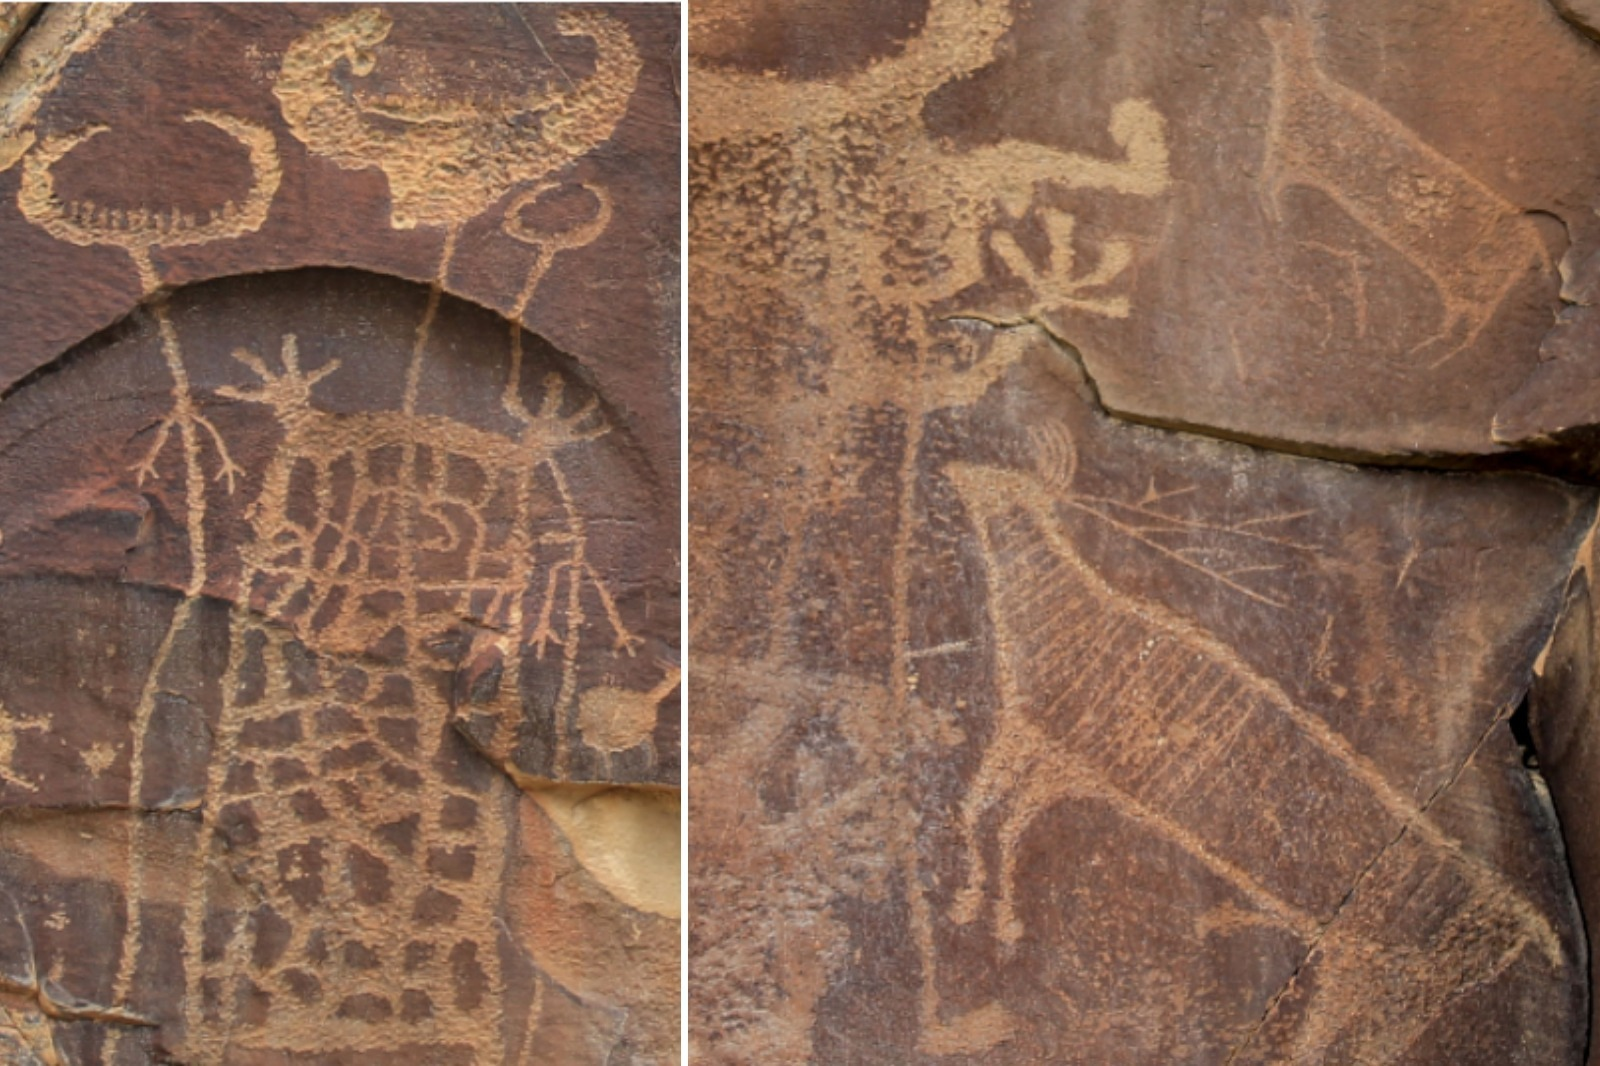 Petroglyphs near Thermopolis in Hot Springs County, Wyoming